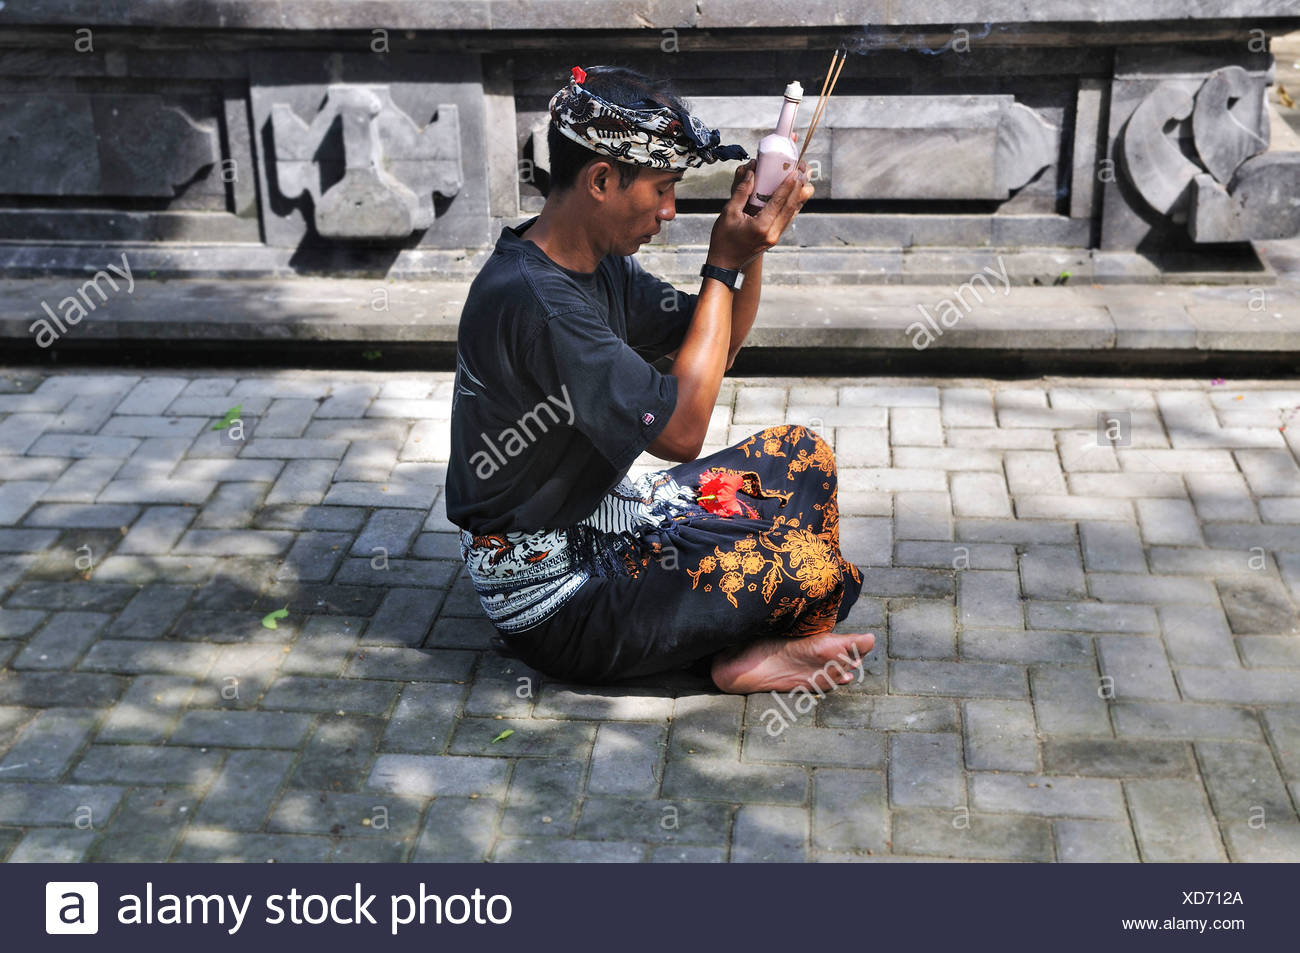 Young man bringing offerings to the gods, Denpasar, Bali, Indonesia, Southeast Asia - Stock Image